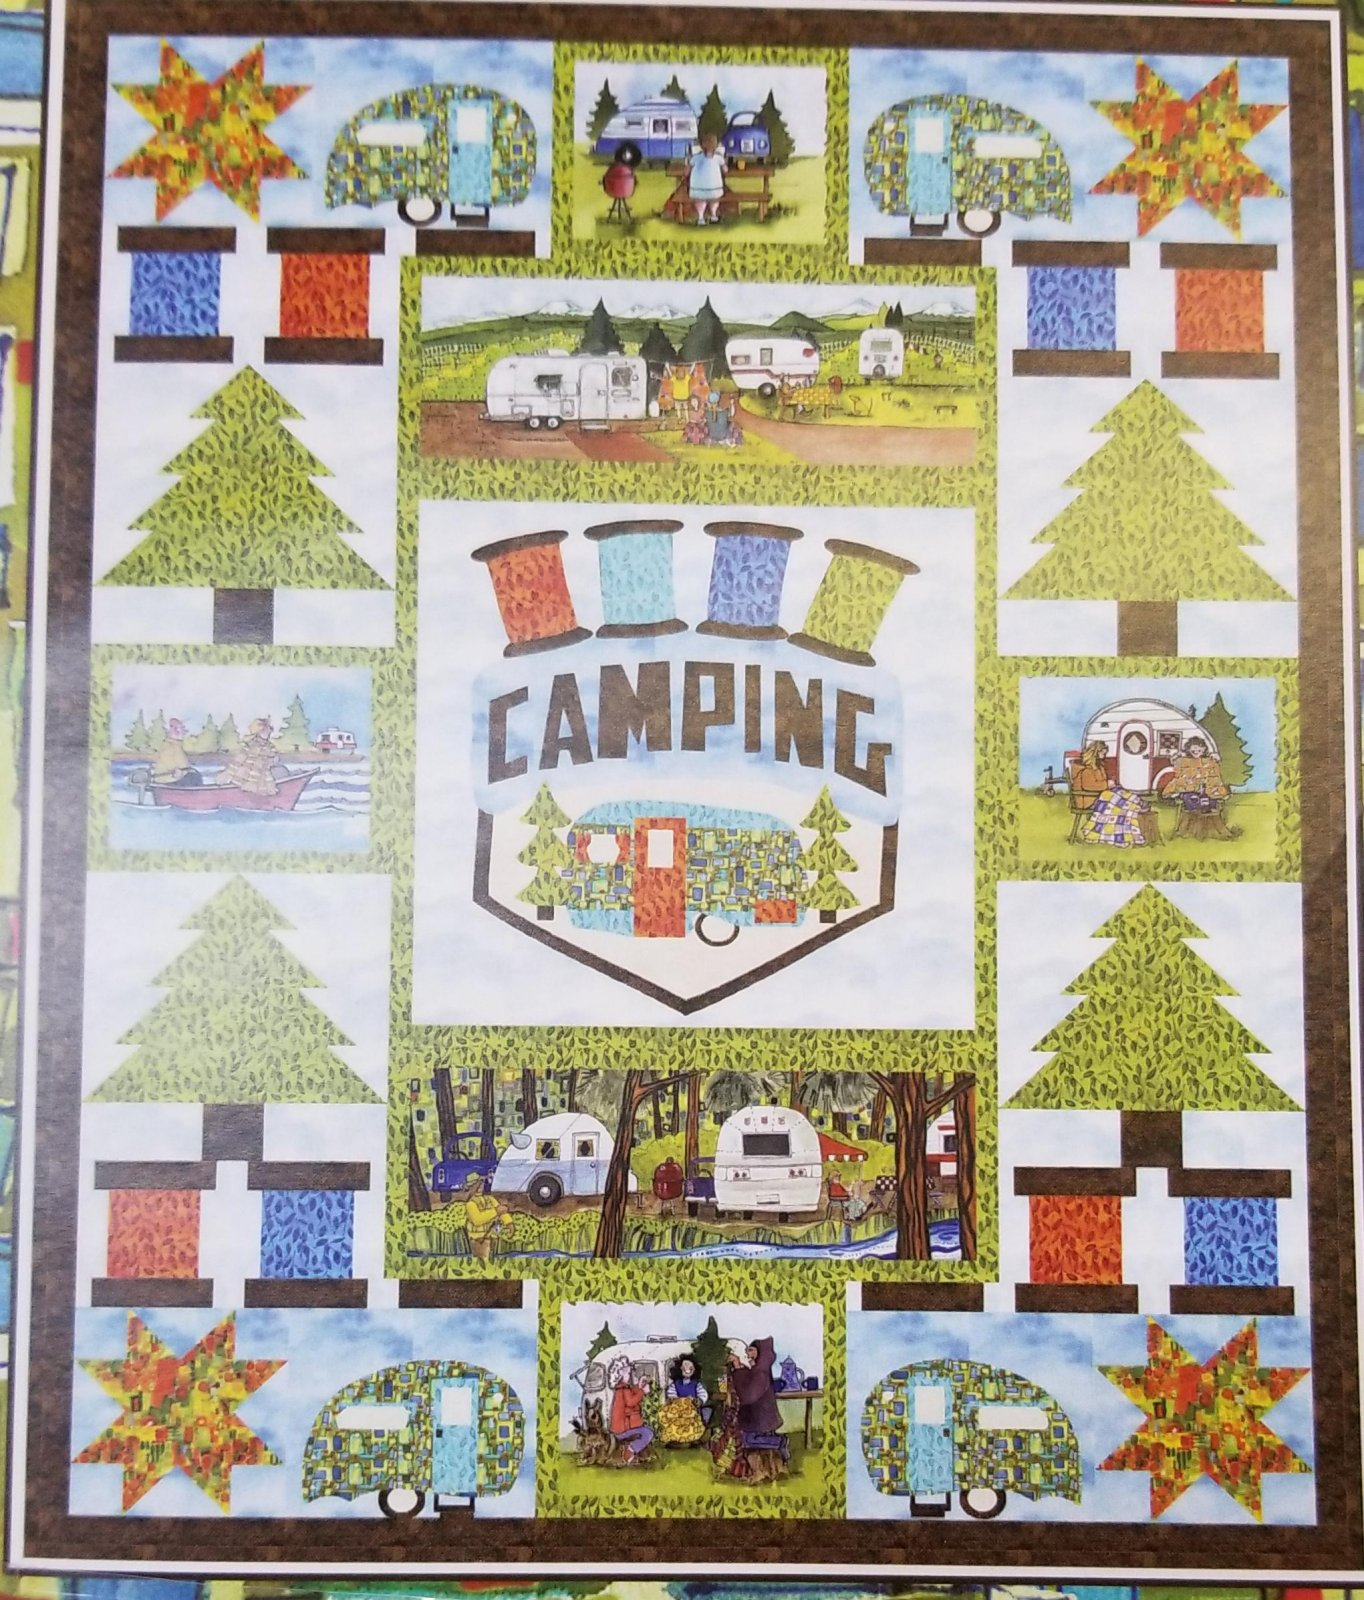 My Kind of Campin Quilt Kit